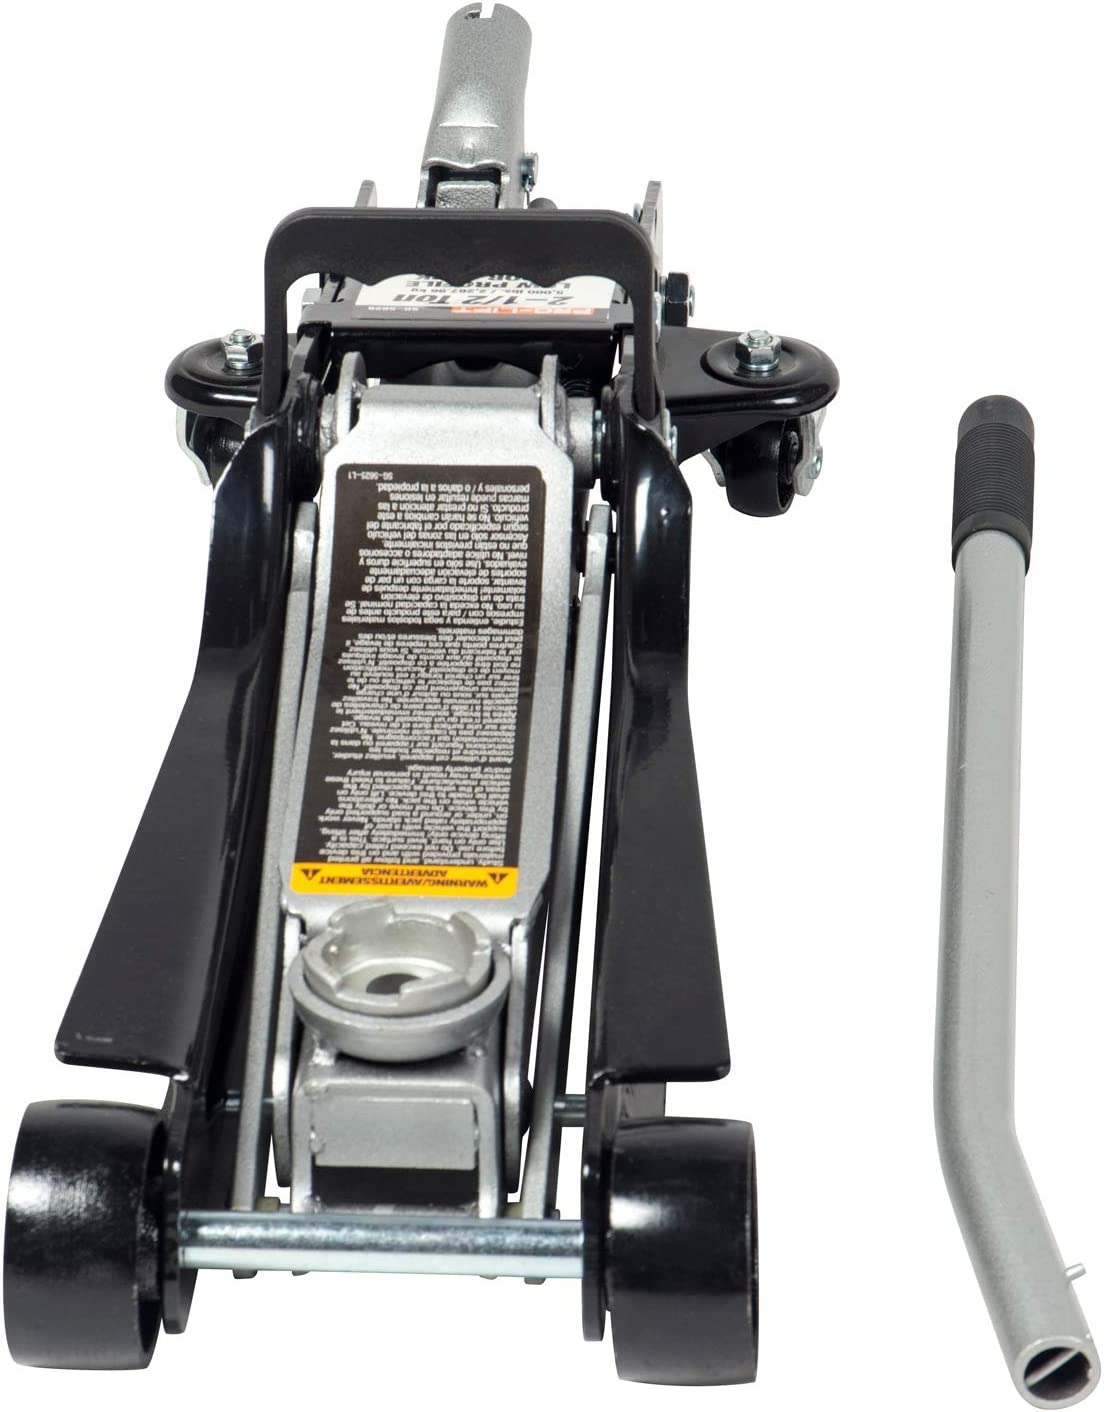 Pro-LifT SG-5625 2.5 Ton Low Profile Floor Jack - Car Hydraulic Trolley Jack Lift for Home Garage Shop